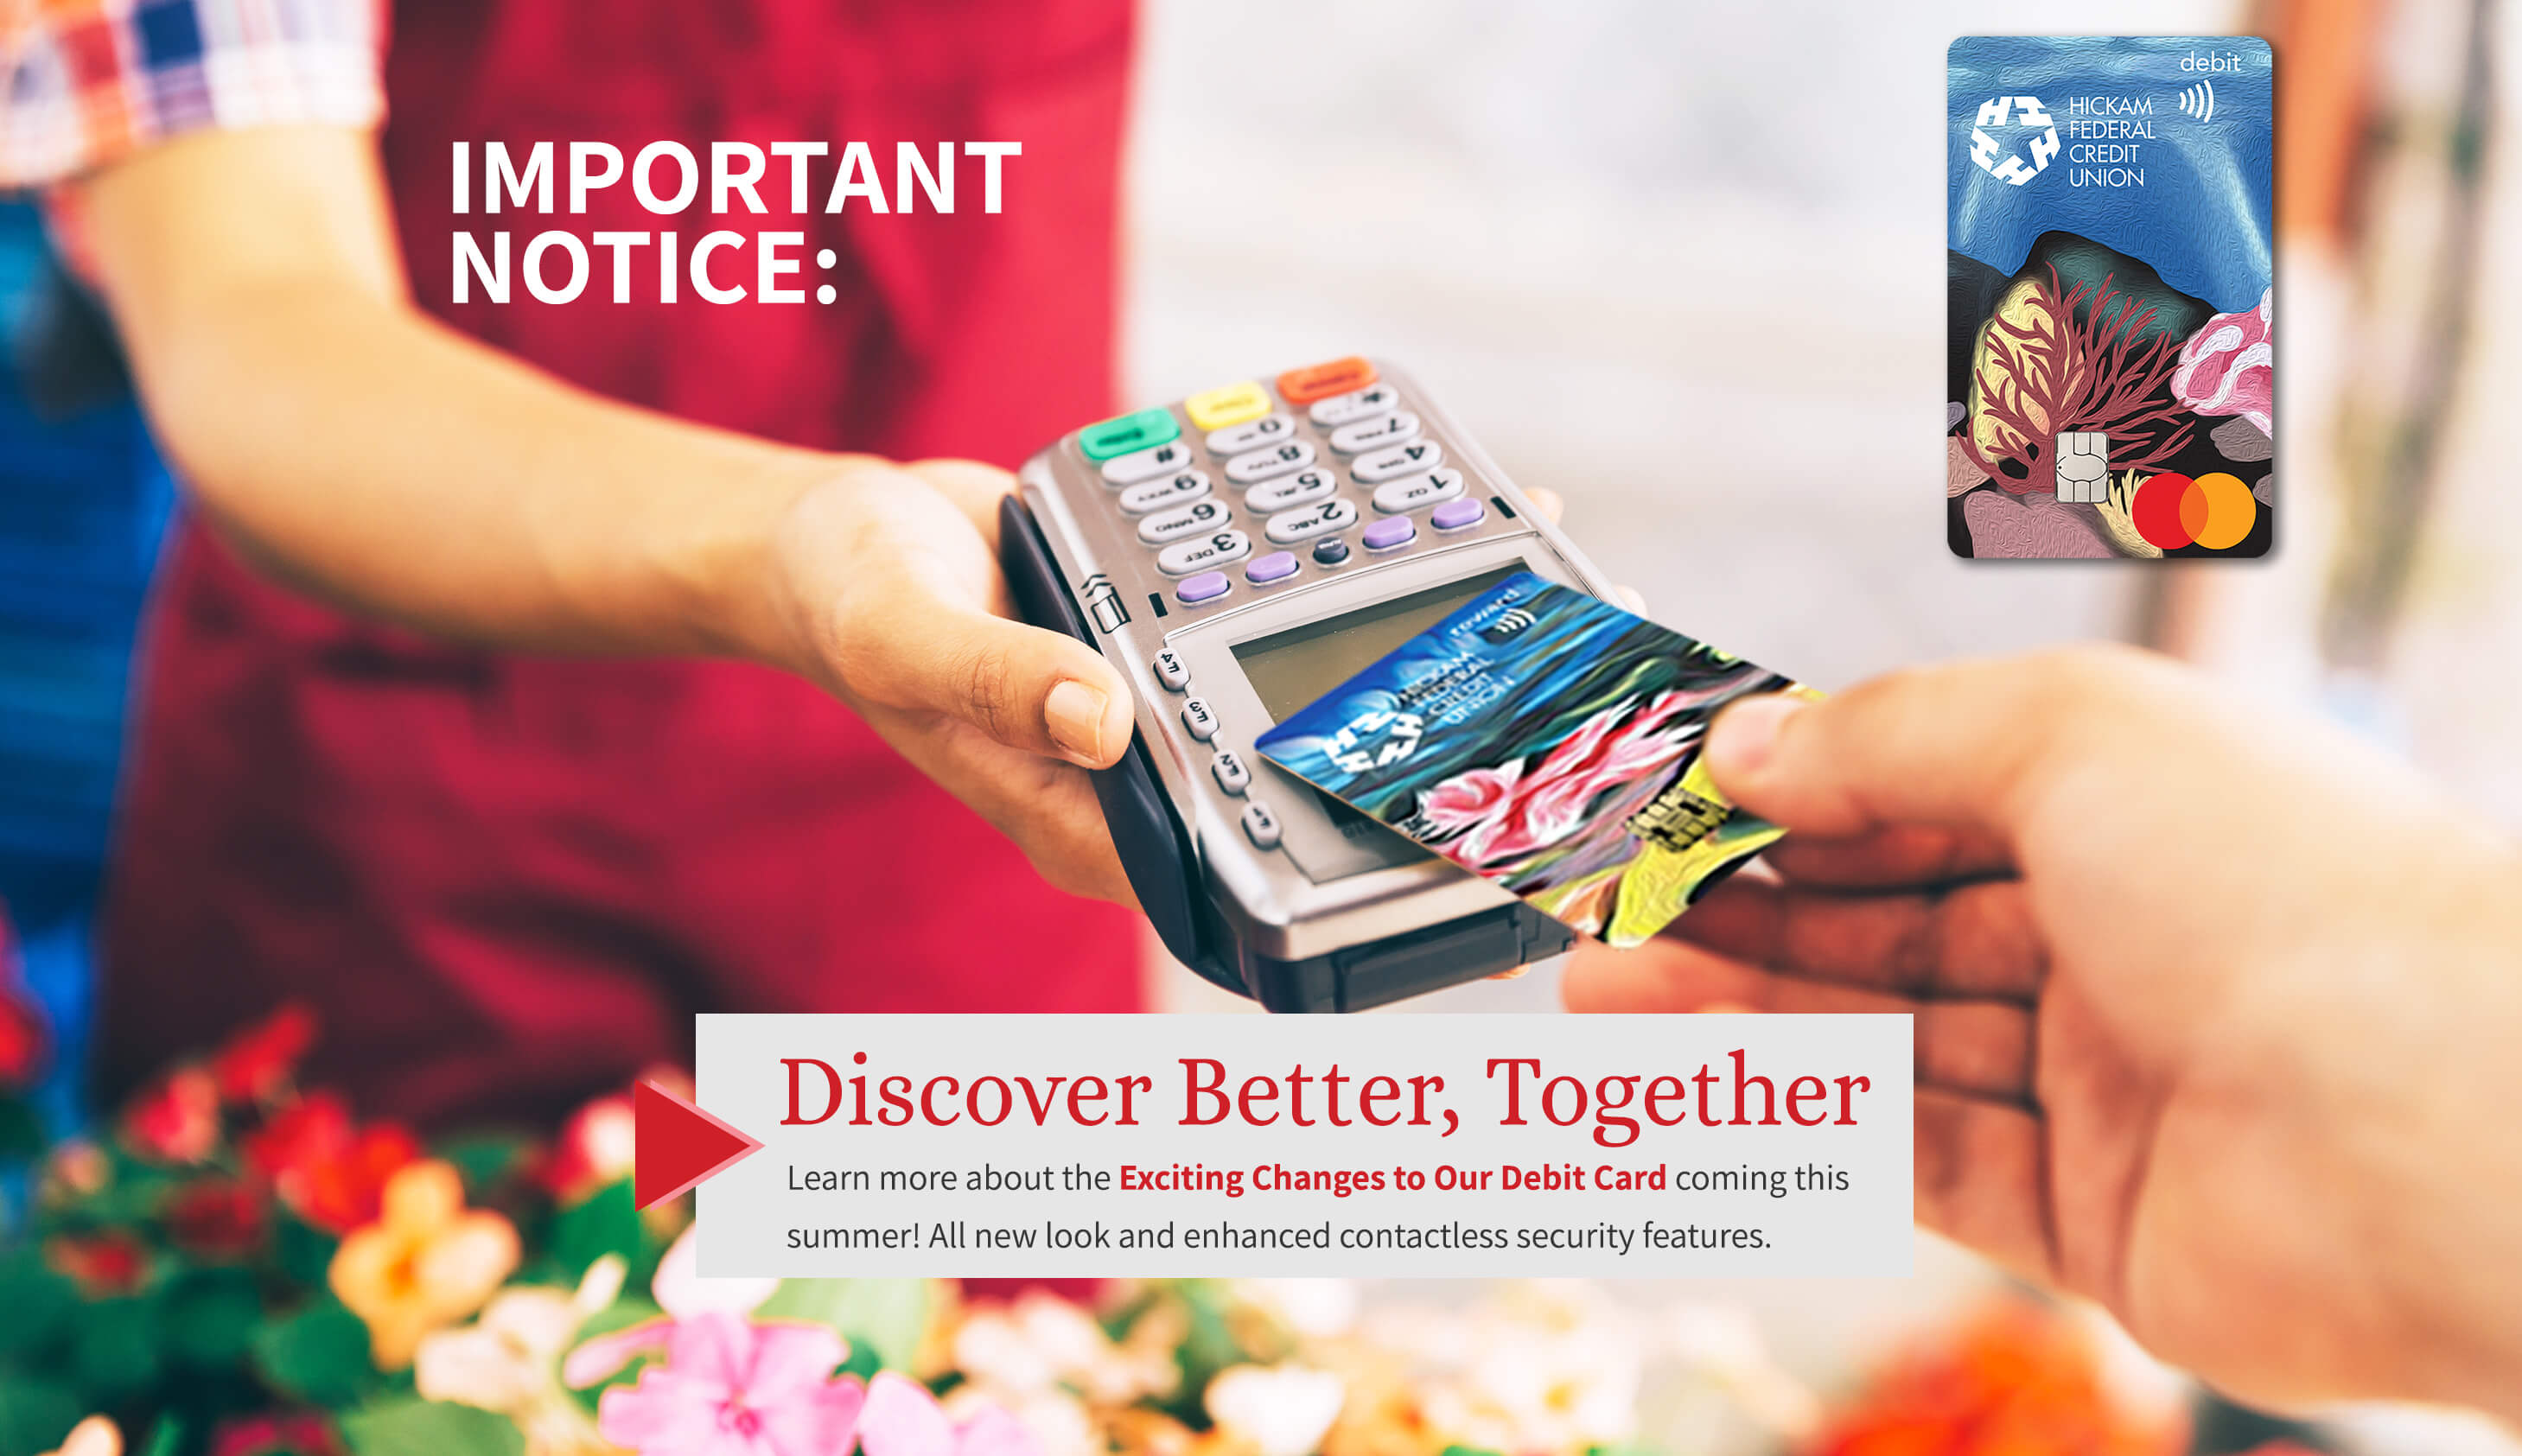 Discover Better, Together. Learn more about the exciting changes to our debit card coming this summer. All new look and enhanced contactless security features.